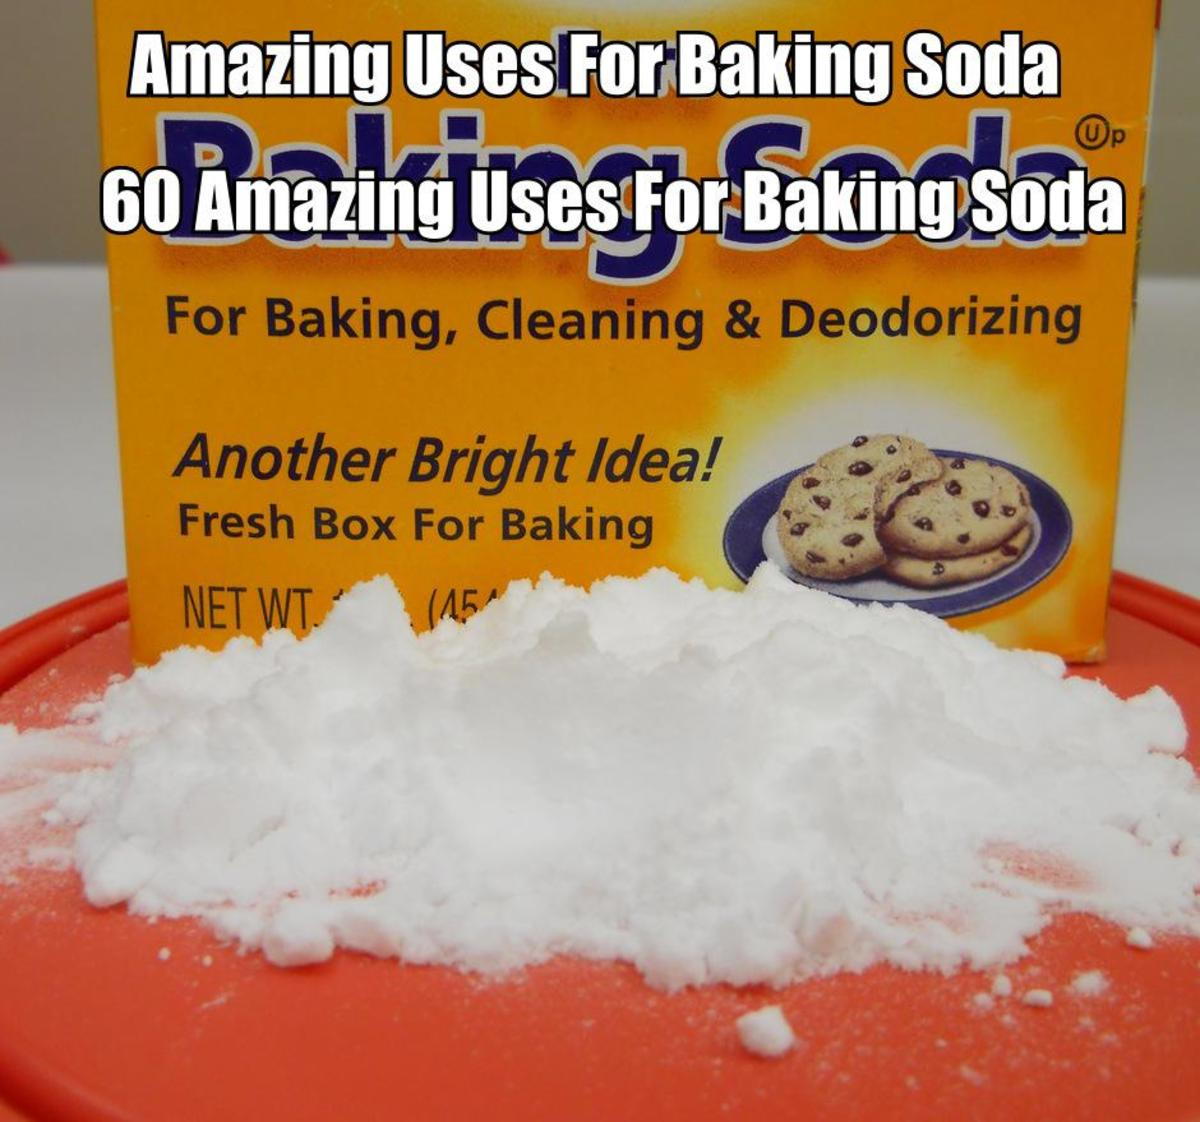 Check out all the  amazing uses for baking soda. Some of these uses for baking soda amazed even me. If you want a super clean house be sure to read all the uses for baking soda. Please share this Hub Page URL with your Facebook, Twitter and friends.